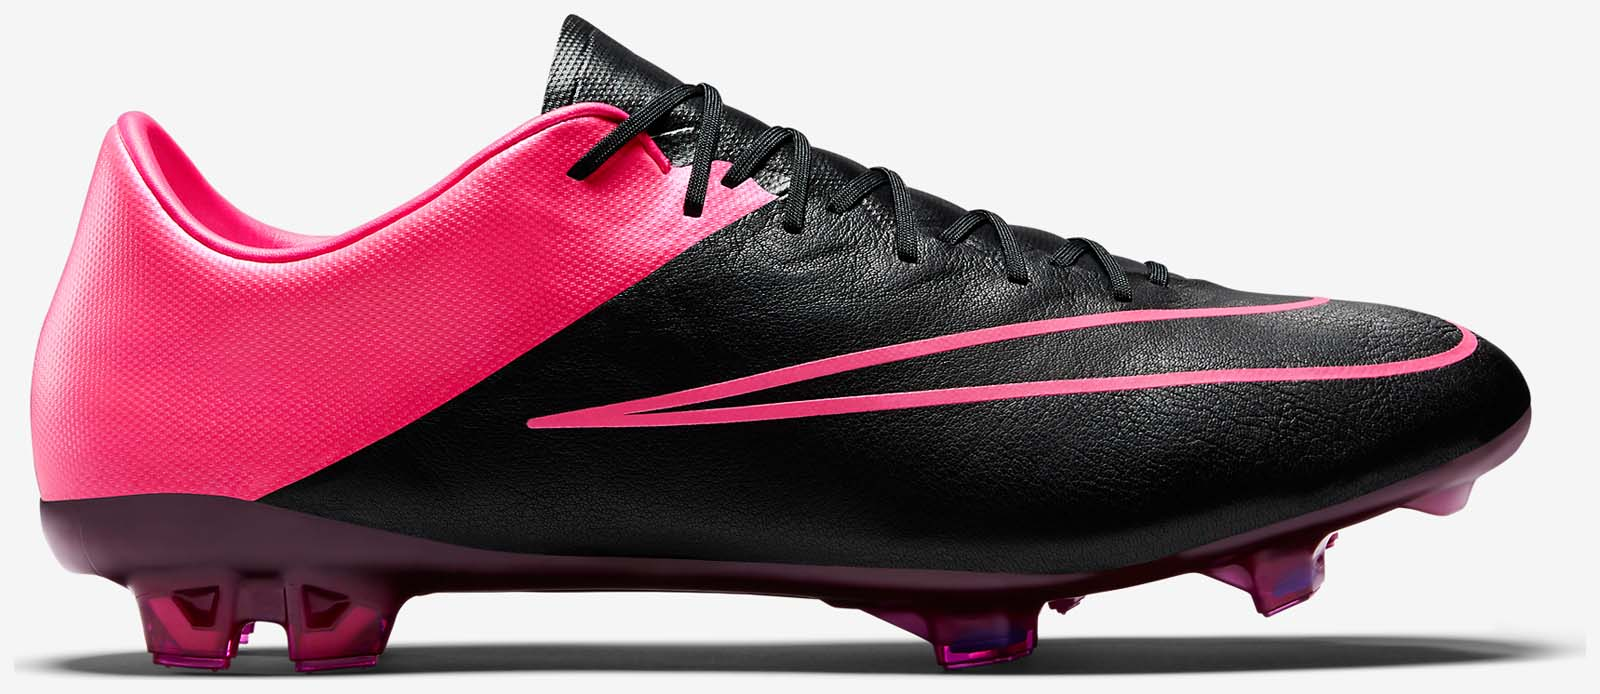 Nike mercurial vapor x leather boots released footy for Nike mercurial vapor 11 tech craft